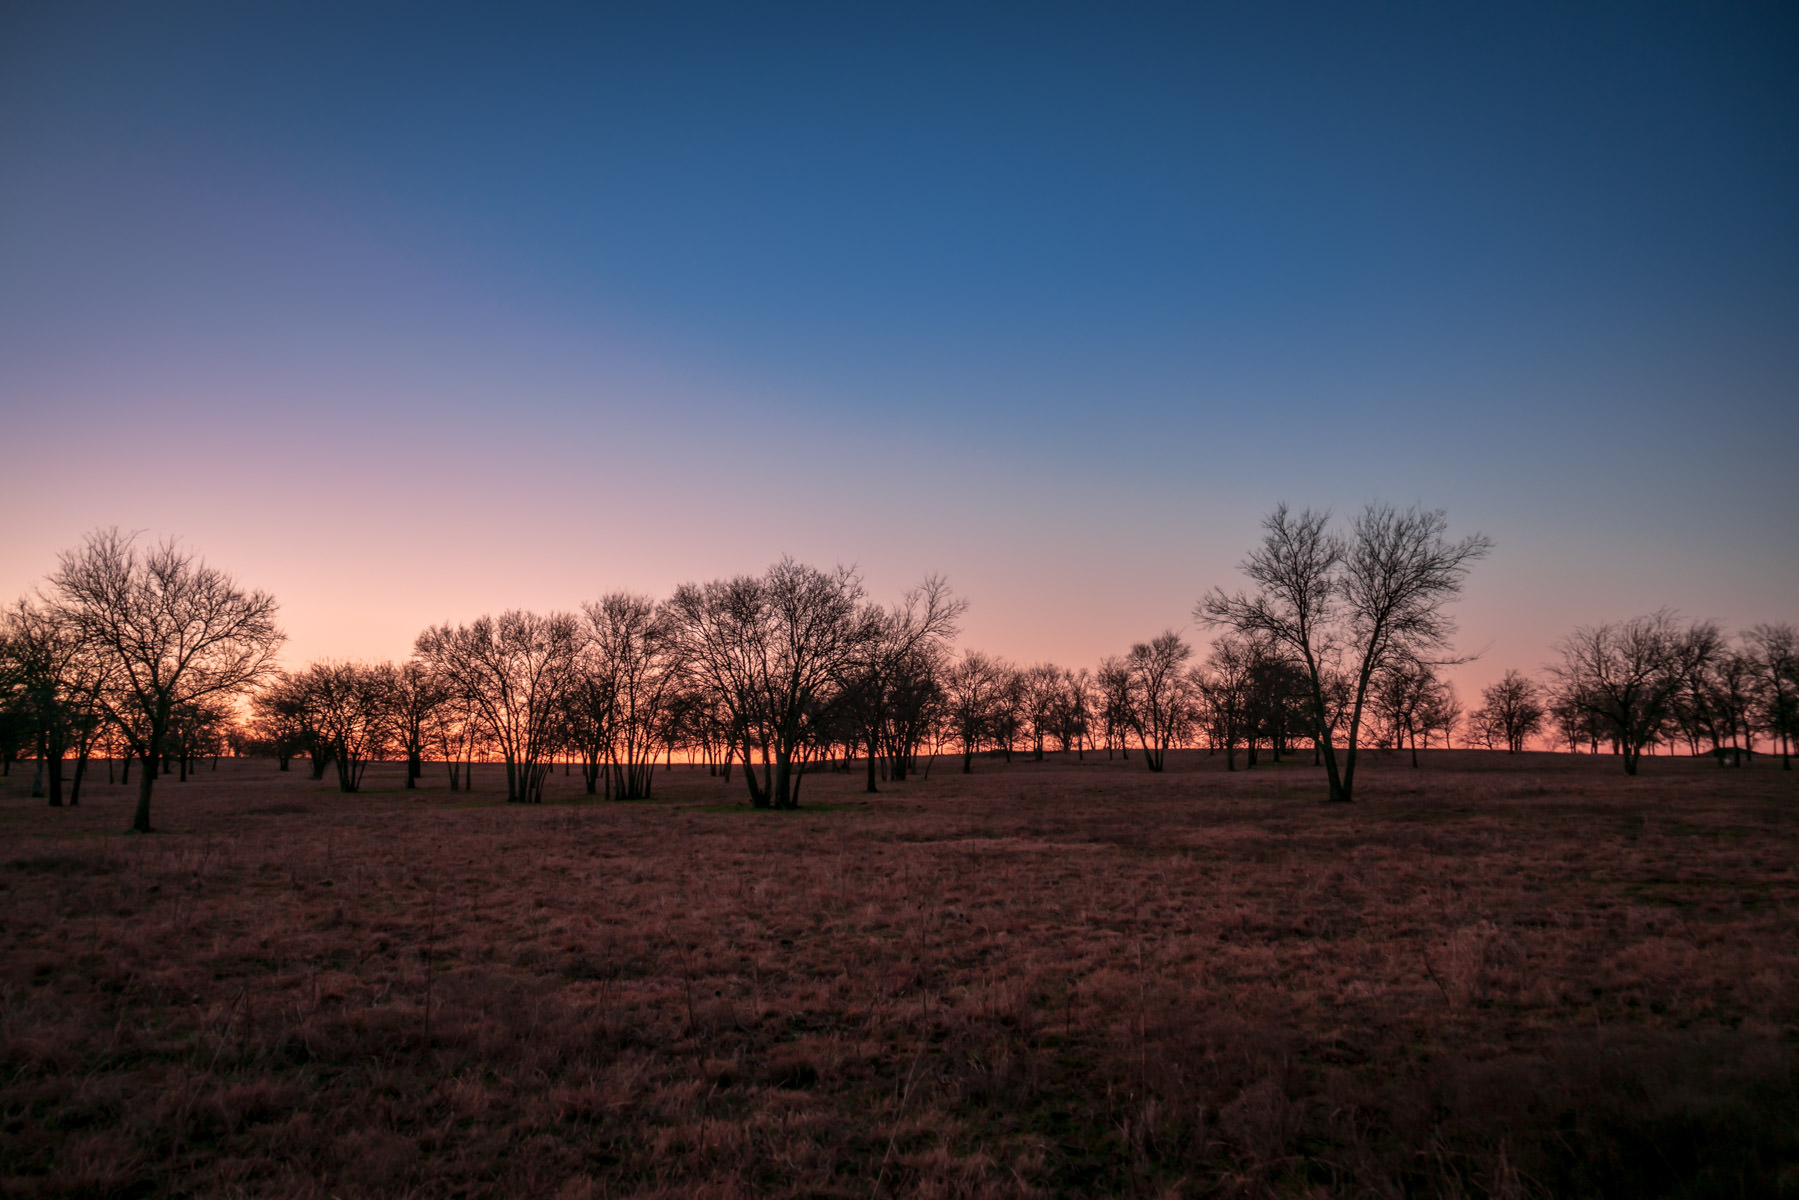 Trees in a field near Sherman, Texas, greet the dawn.